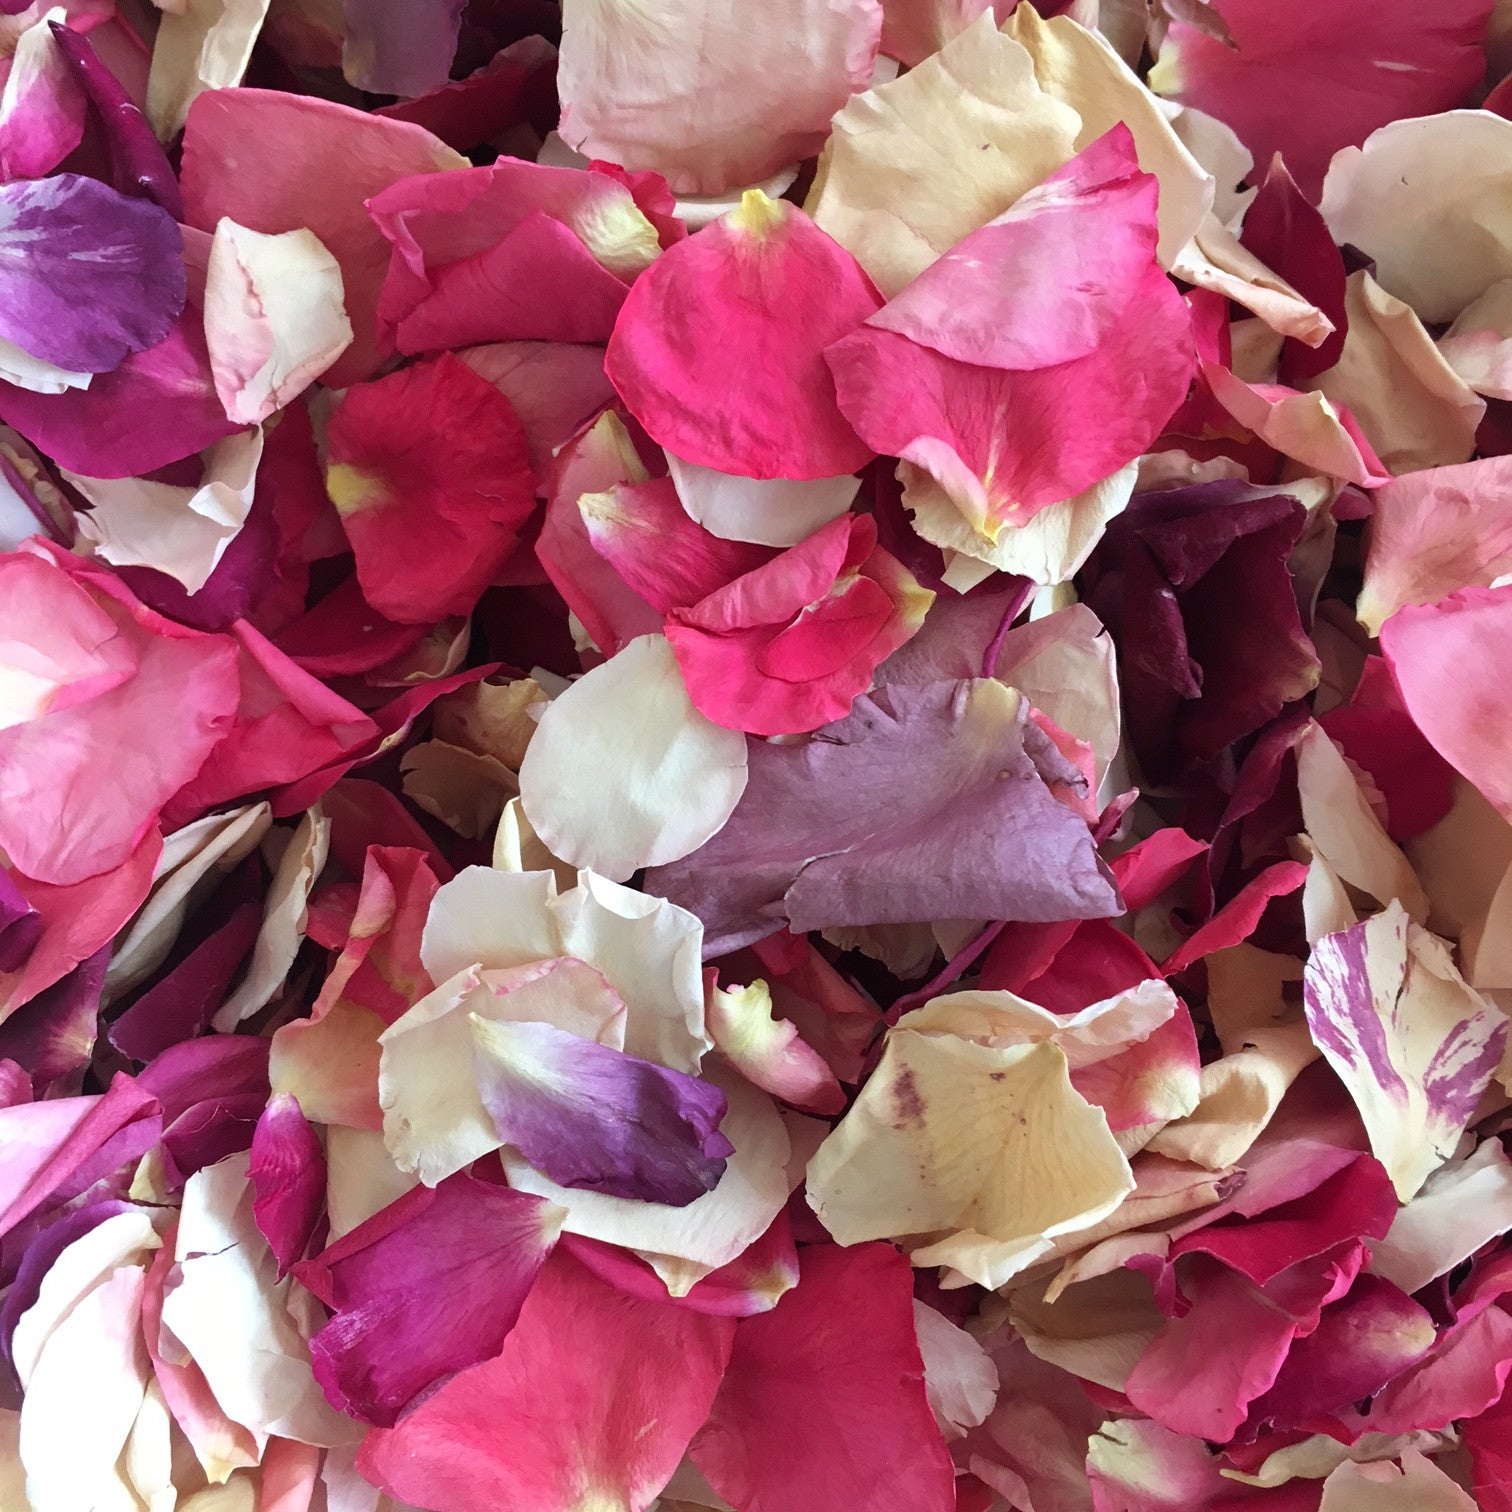 Our Latest Batch Of Budget Mixed Petals Are Simply Beautiful!